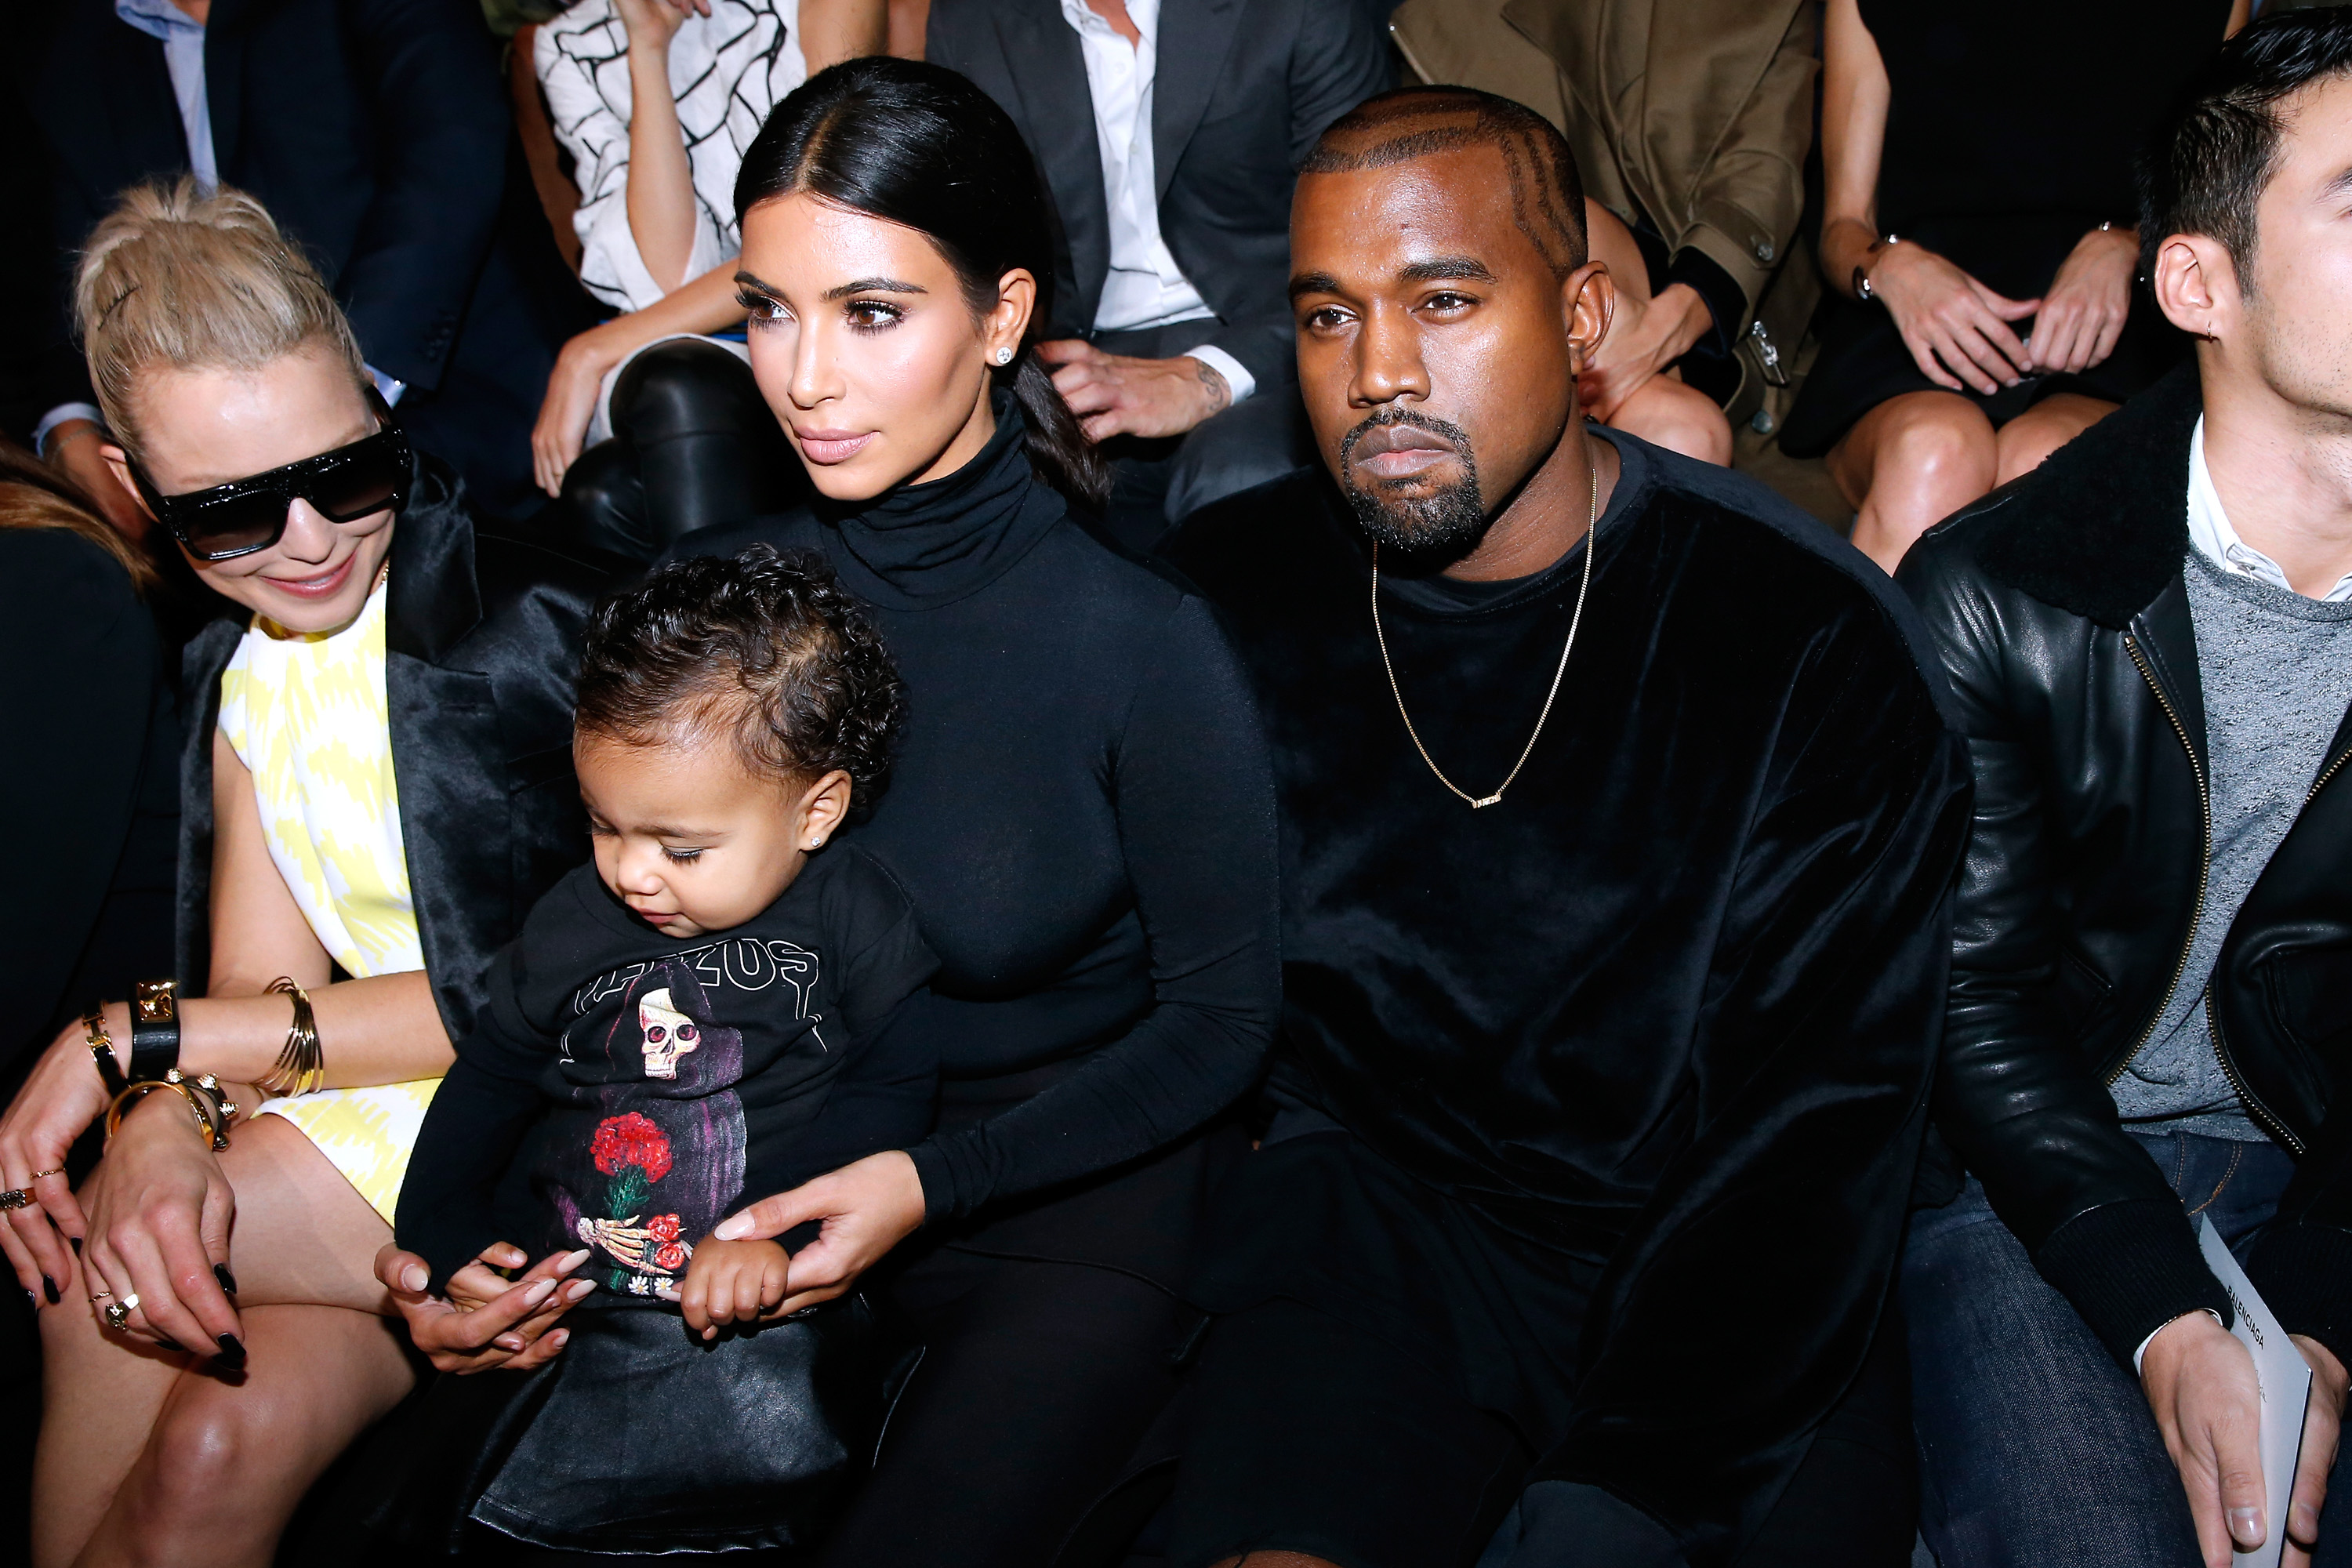 Happy family: Kanye West, Kim Kardashian and their daughter North West (Picture: Bertrand Rindoff Petroff/French Select/Getty Images)